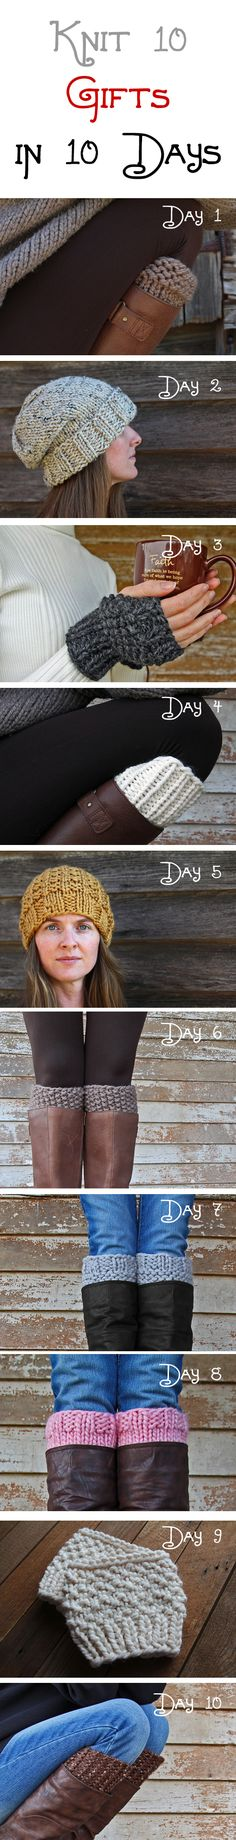 Knit 10 Gifts in 10 Days | Brome Fields